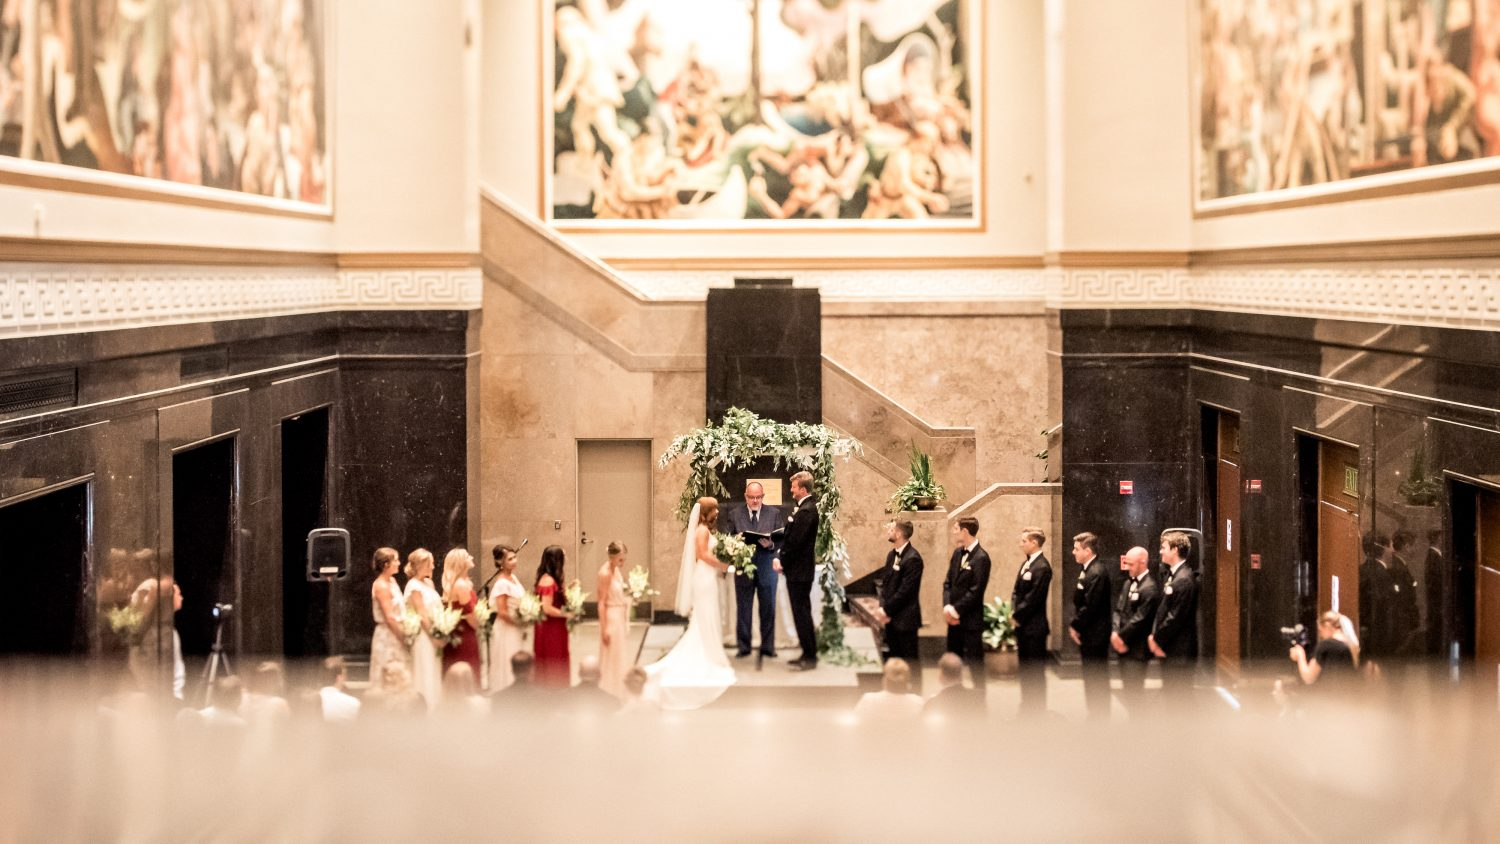 hall of murals wedding photos at indiana university in